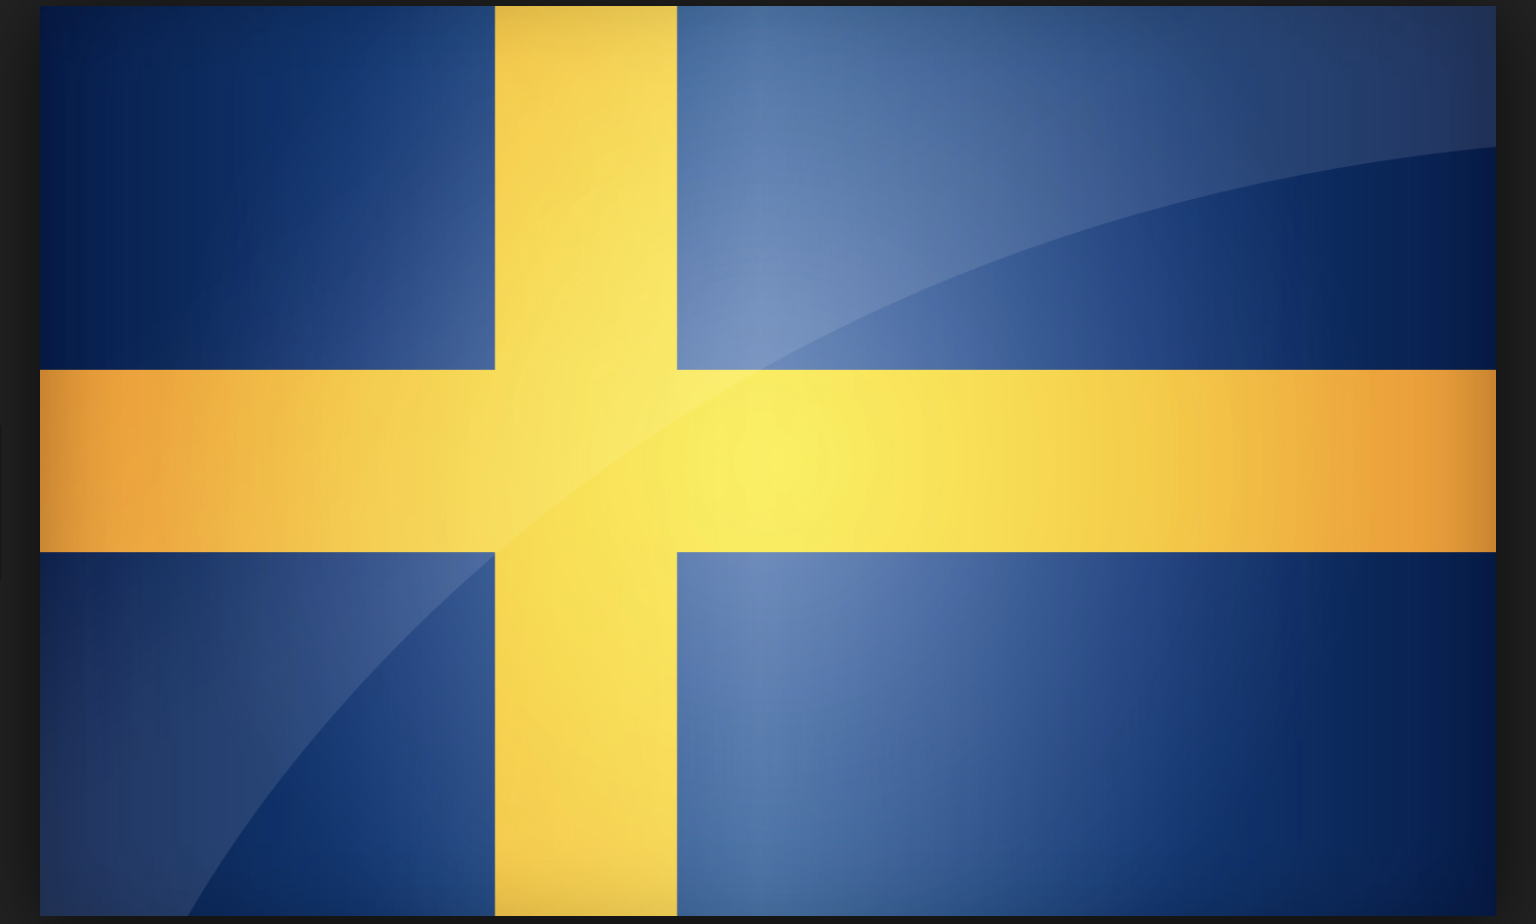 Swedish language revealed as highest paying second language in the UK - RECRUITING TIMES